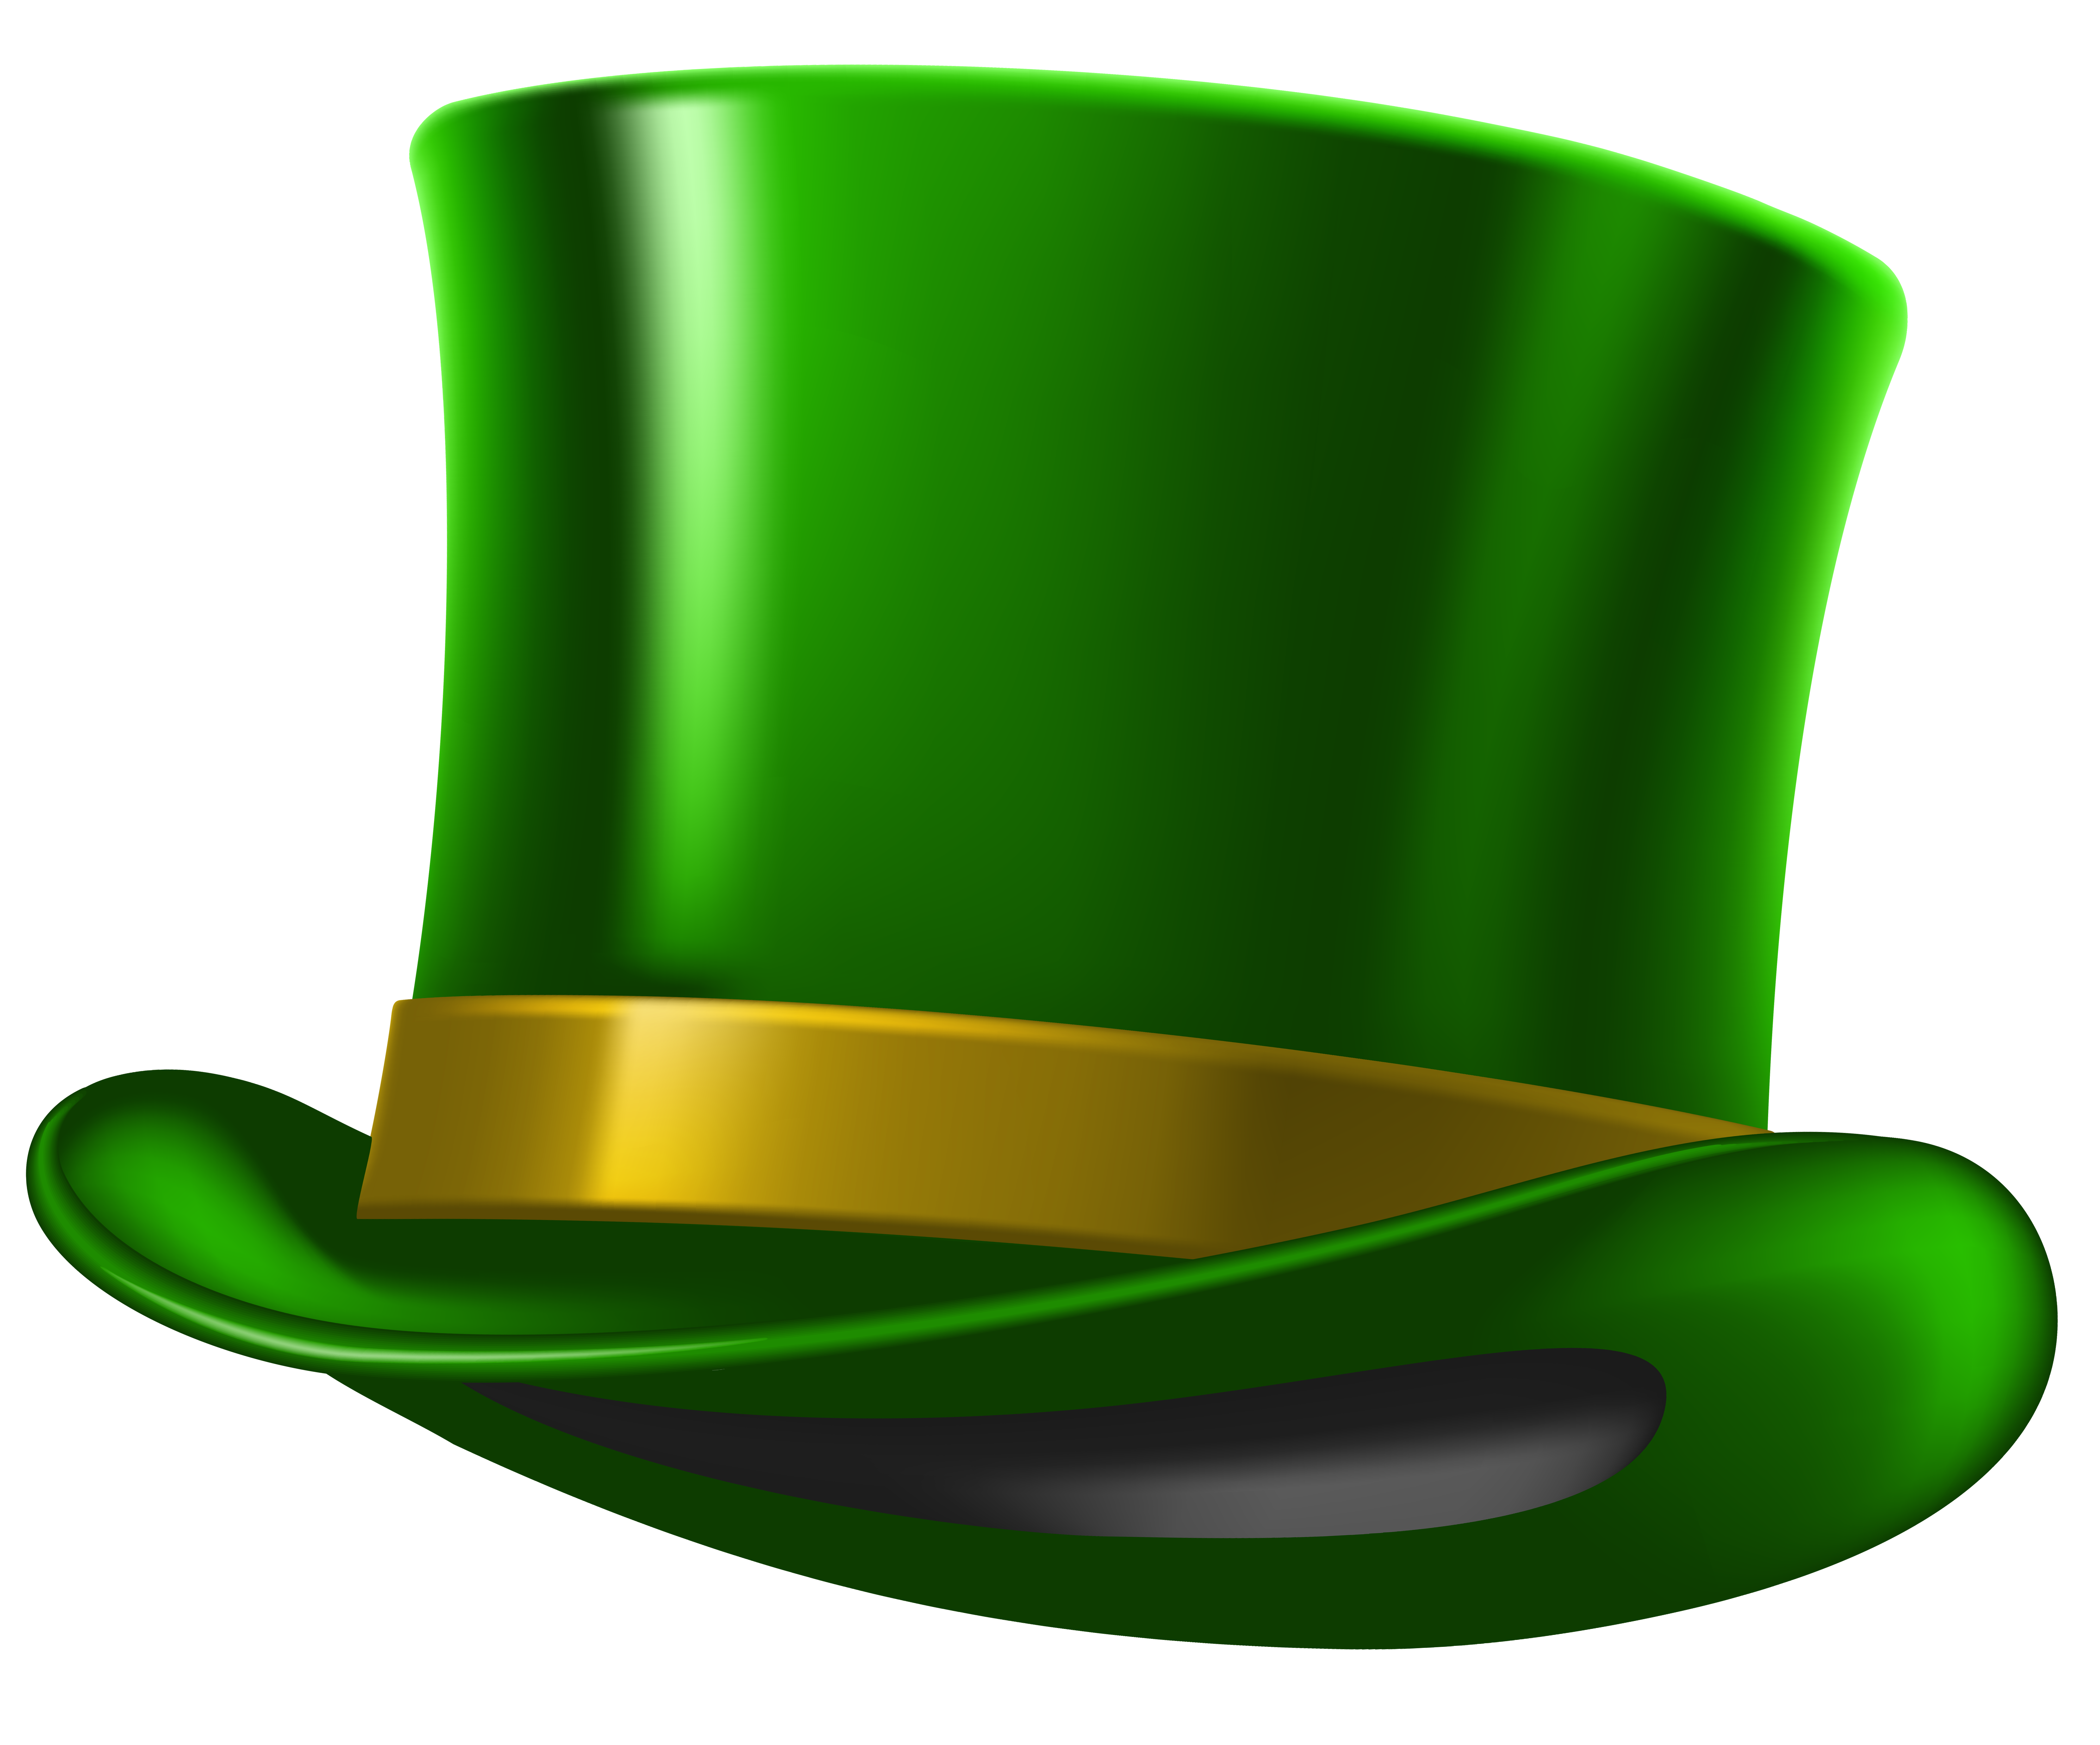 Green patricks png image. Hat clipart st patrick's day